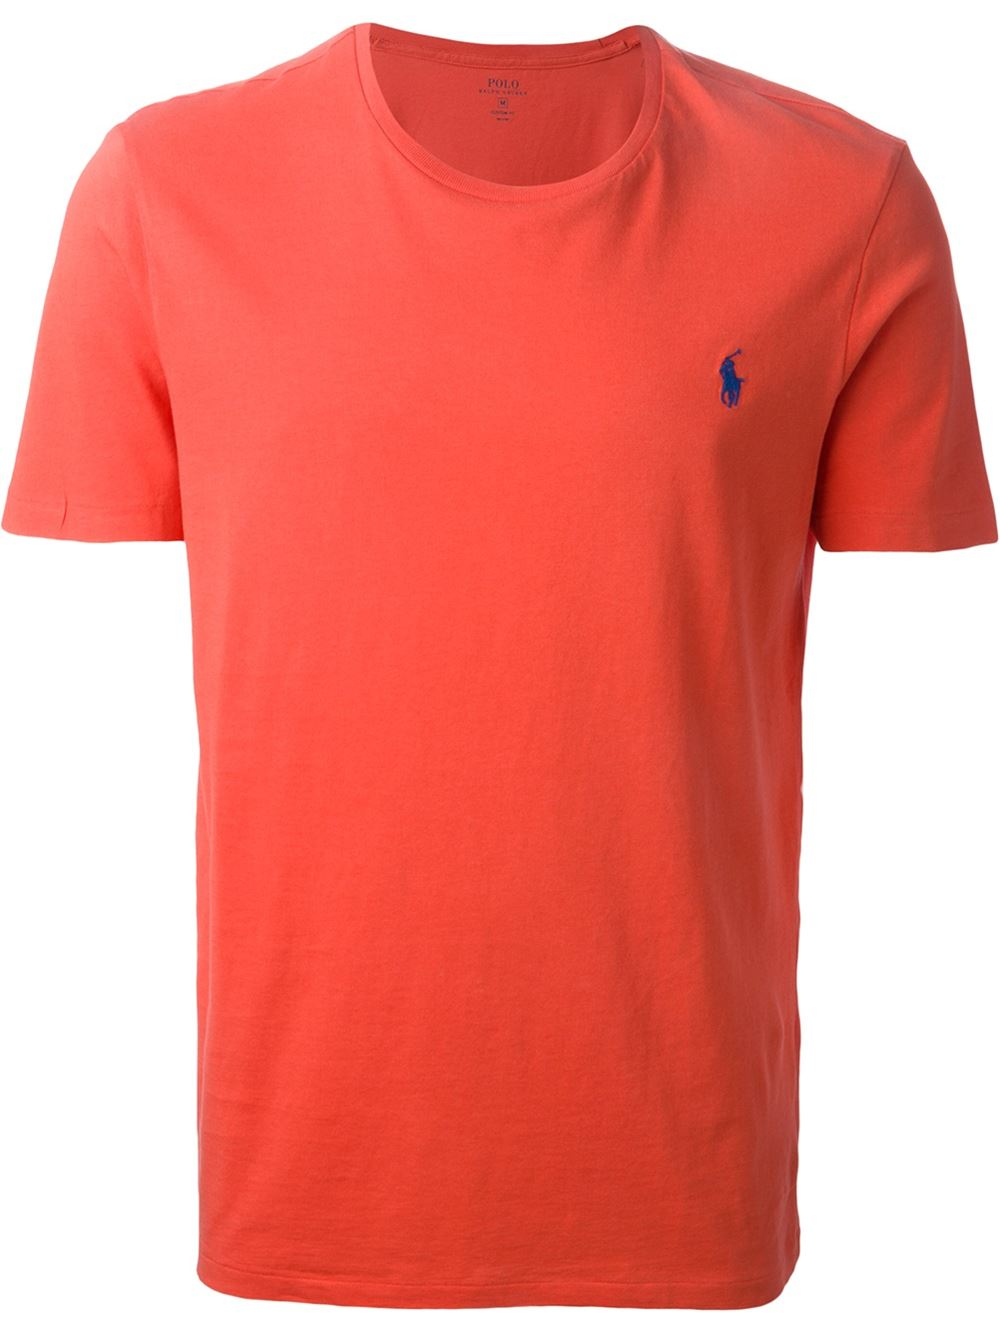 polo ralph lauren logo embroidered t shirt in red for men. Black Bedroom Furniture Sets. Home Design Ideas